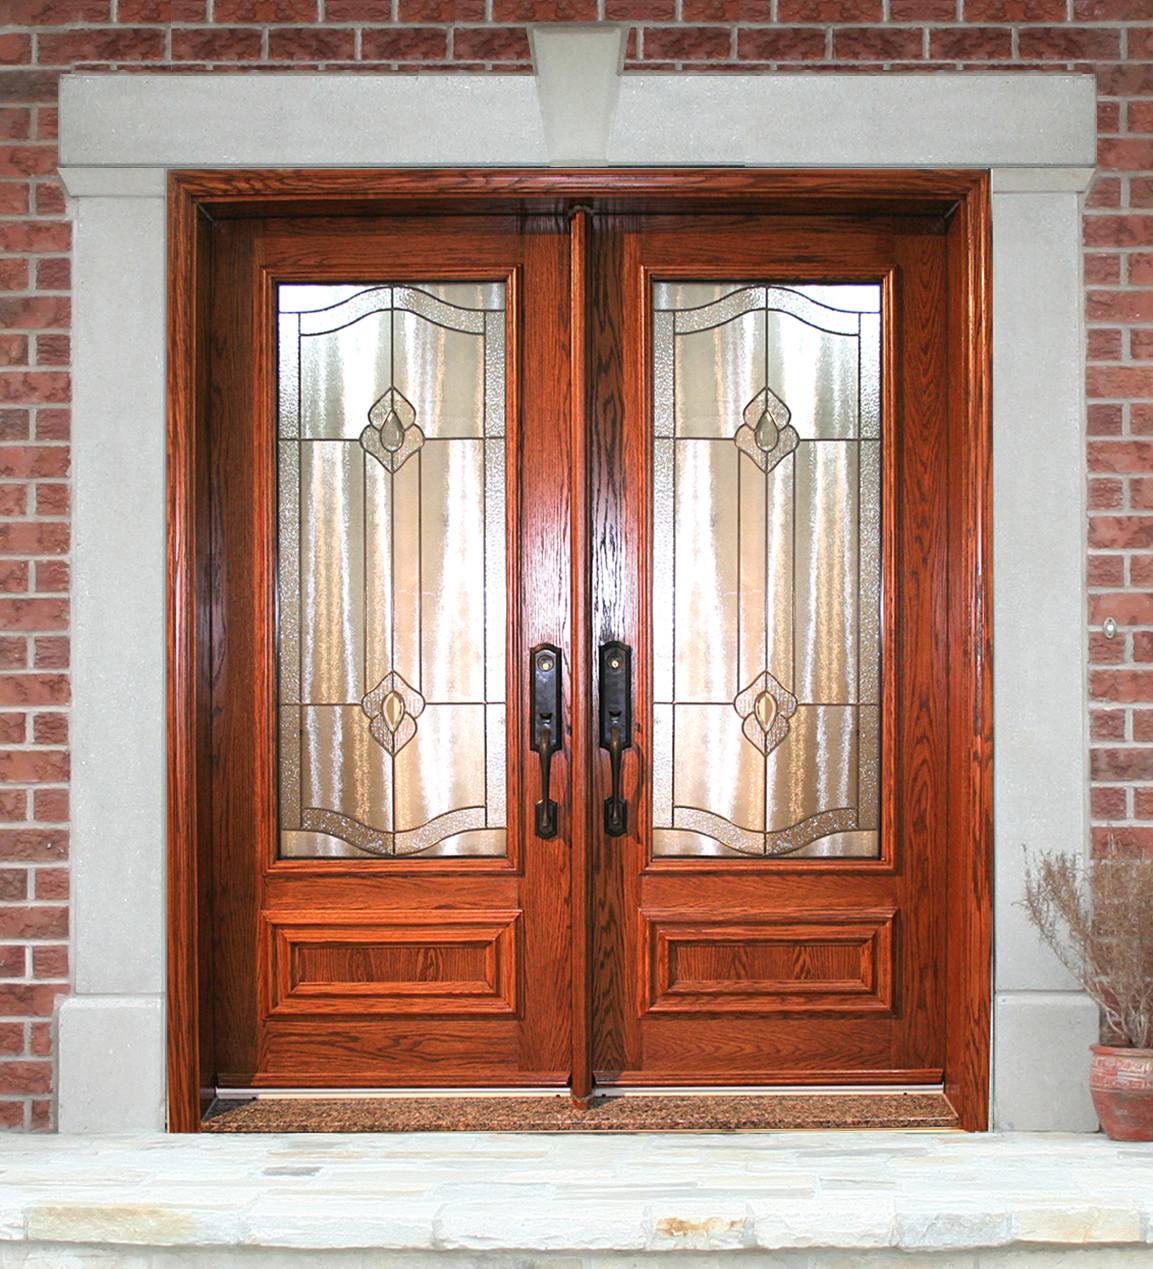 1269 #A64625 Double Steel Door 22 Gauge Steel With Exterior Oak Finish. Door With  wallpaper Steel Double Doors Exterior 42151153